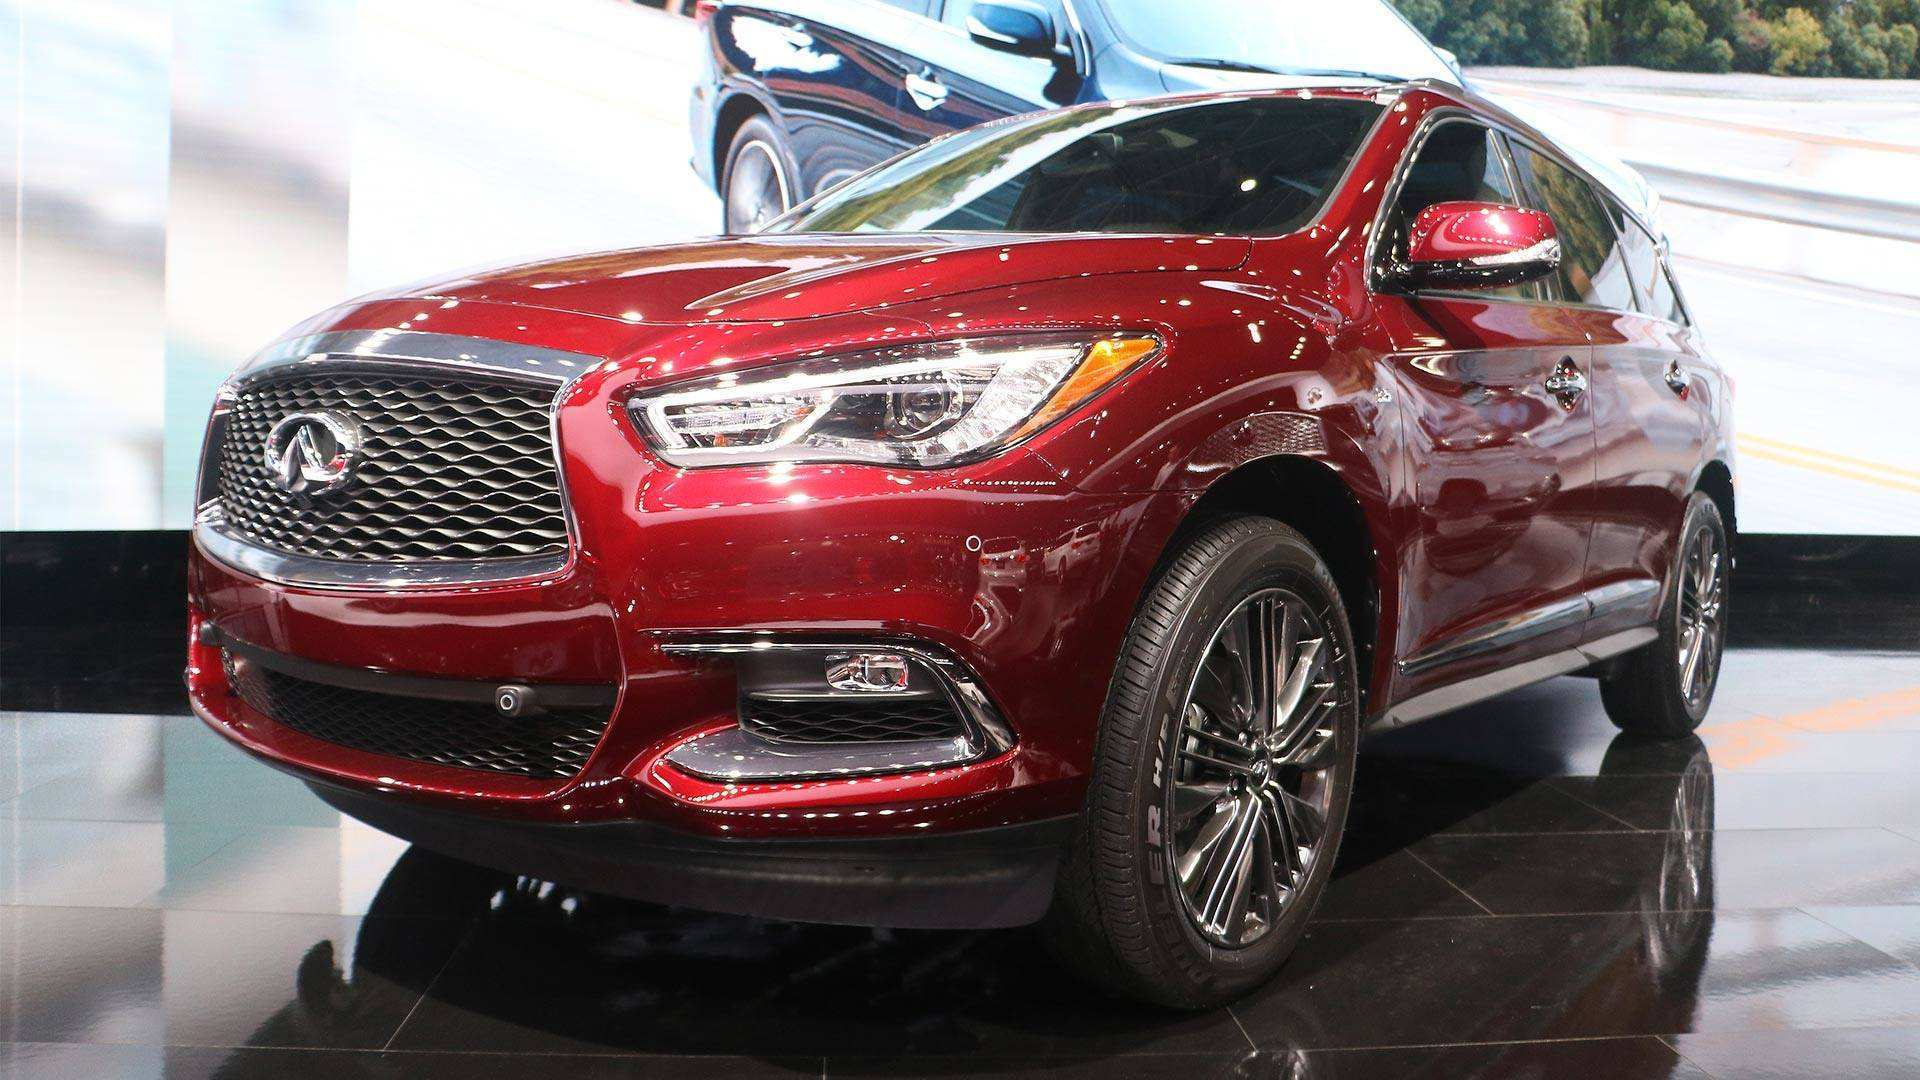 22 Concept of Best 2019 Infiniti Wx60 Redesign Price And Review Style by Best 2019 Infiniti Wx60 Redesign Price And Review